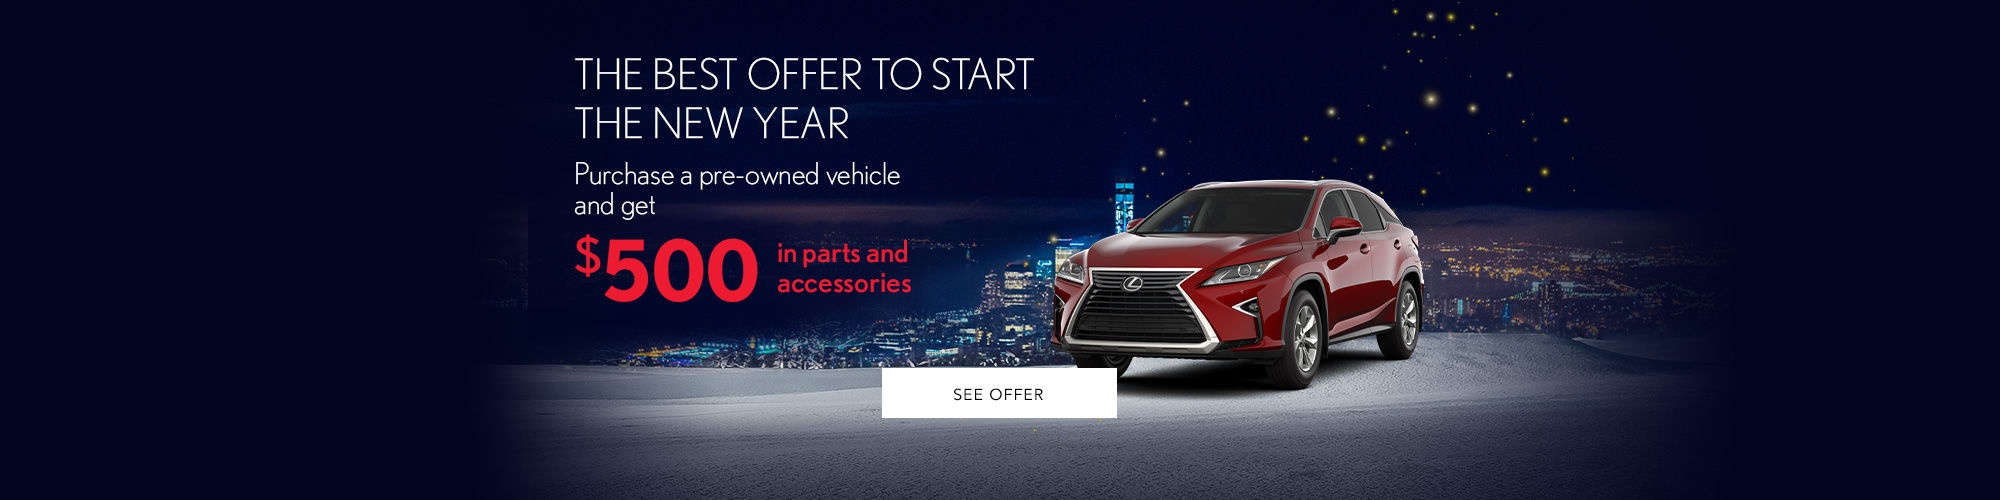 best pre-owned offer